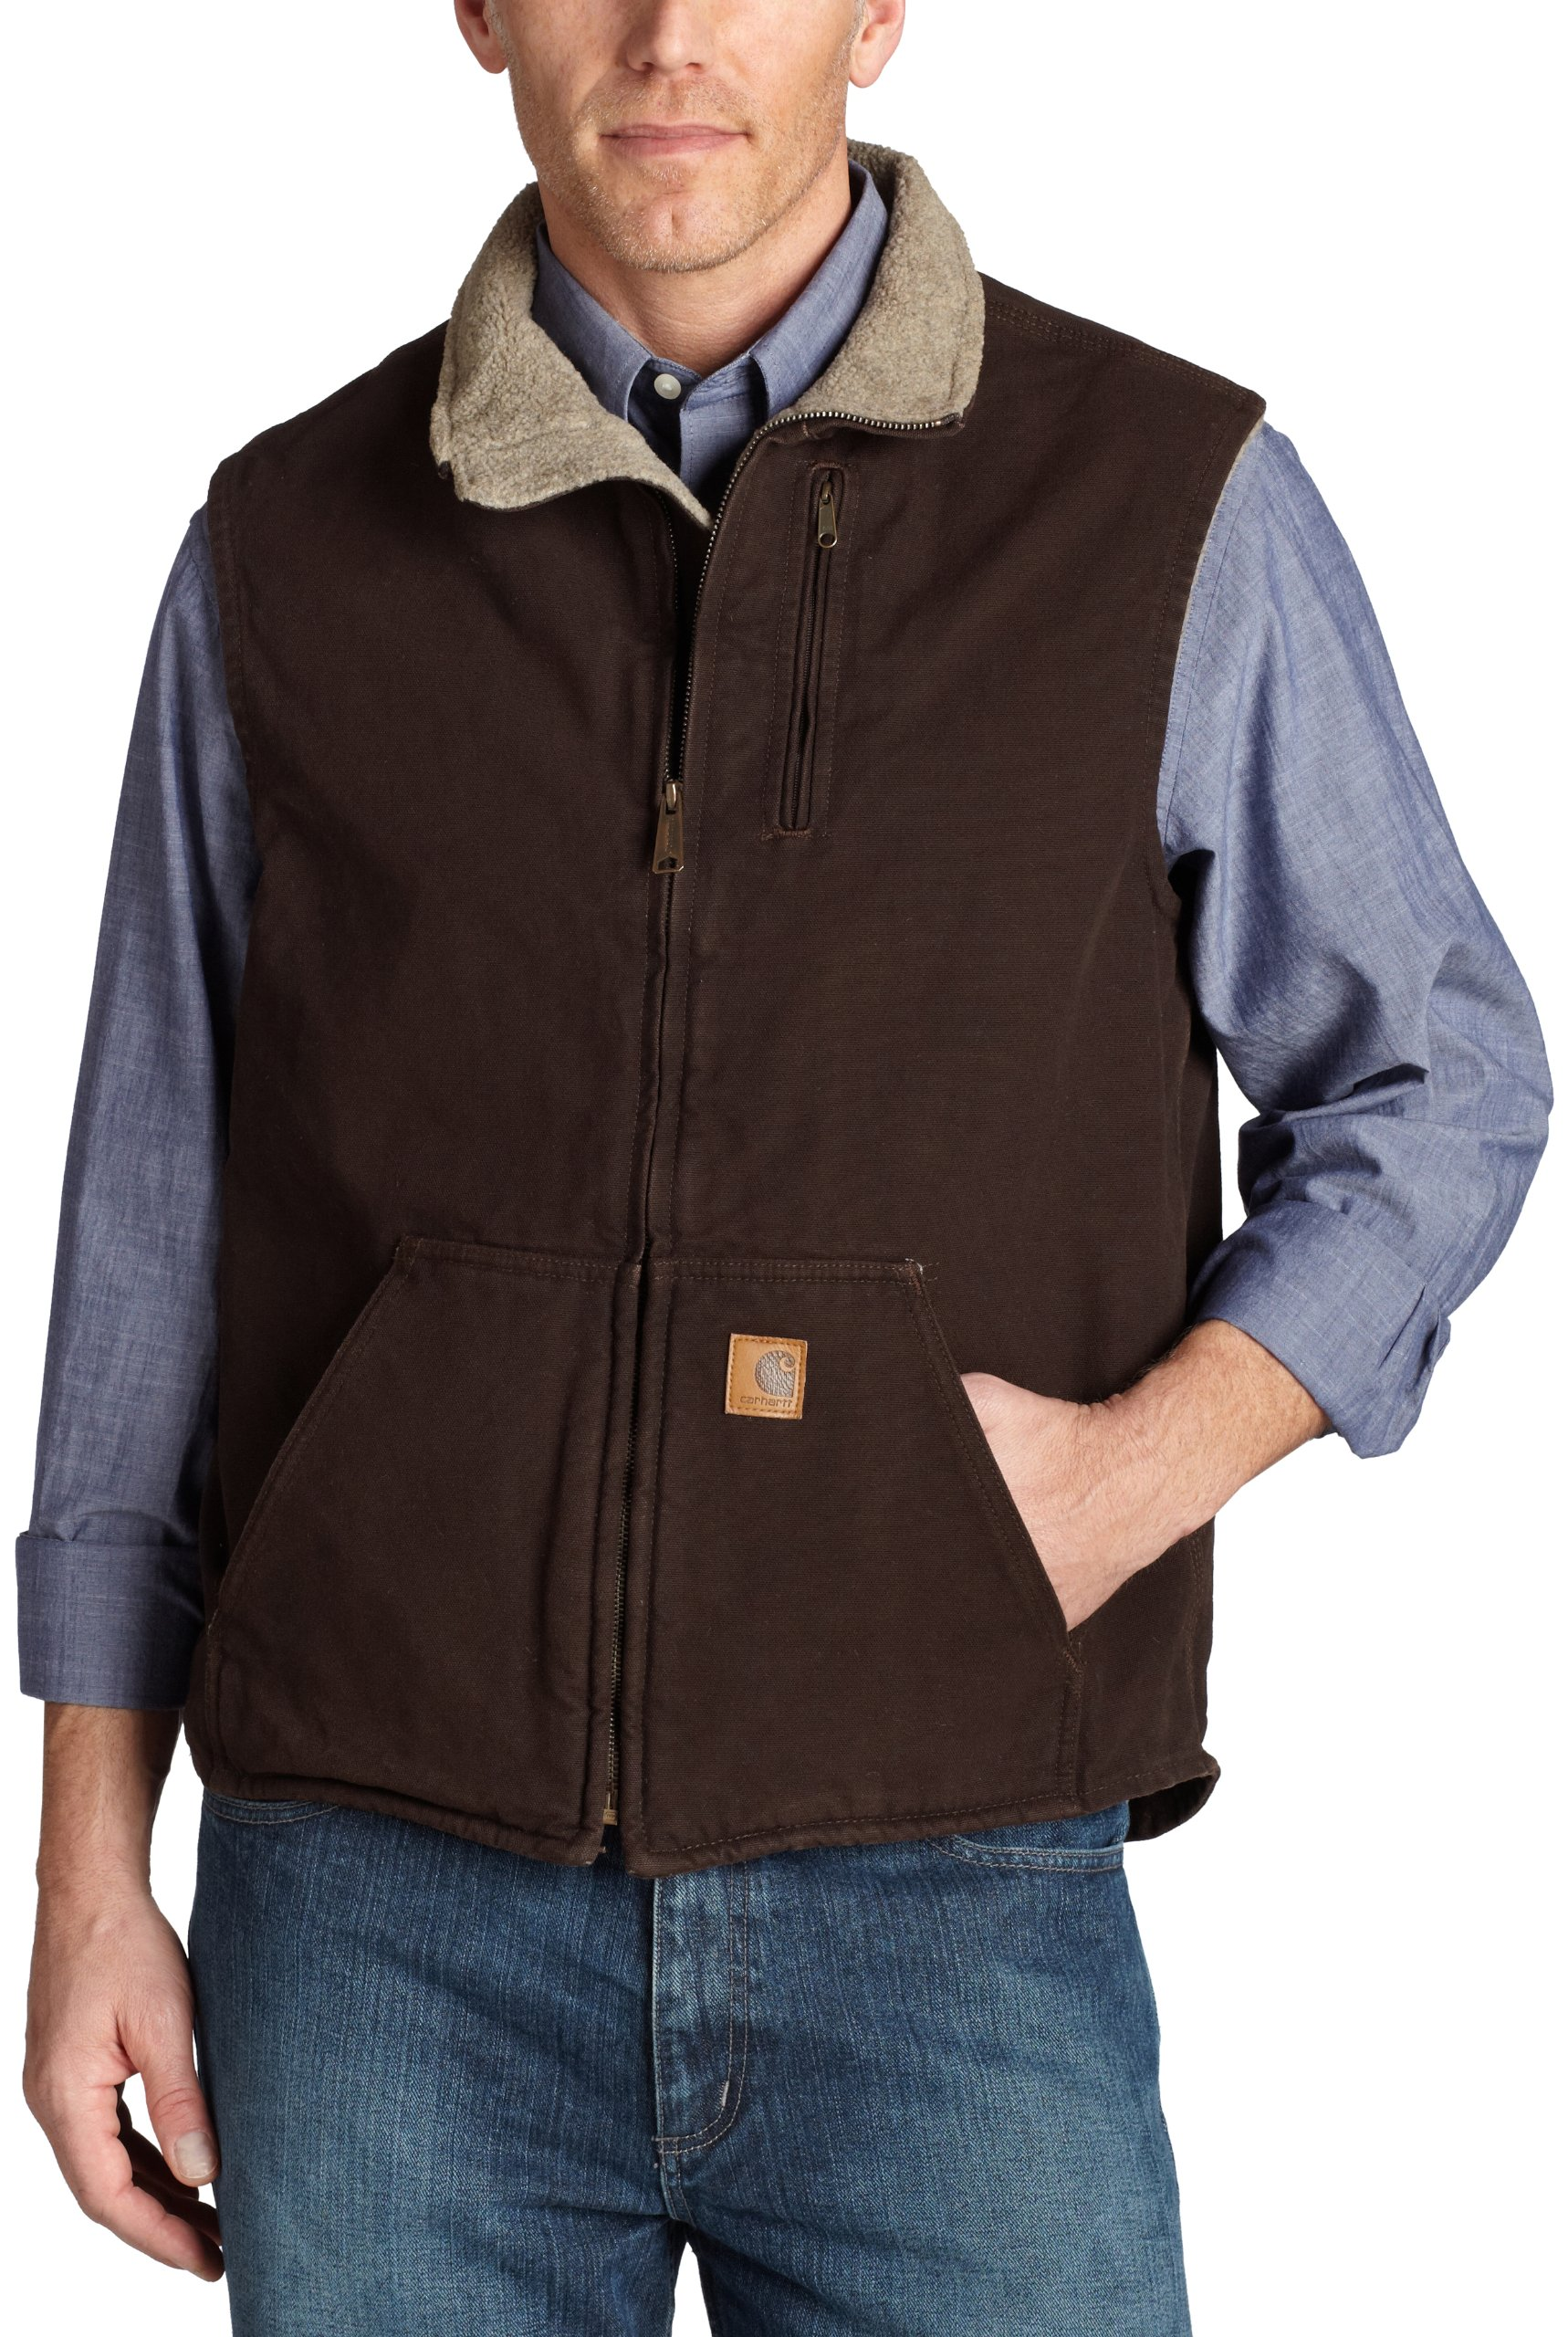 Carhartt Men's Sherpa Lined Sandstone Mock Neck Vest V33,Dark Brown,X-Large